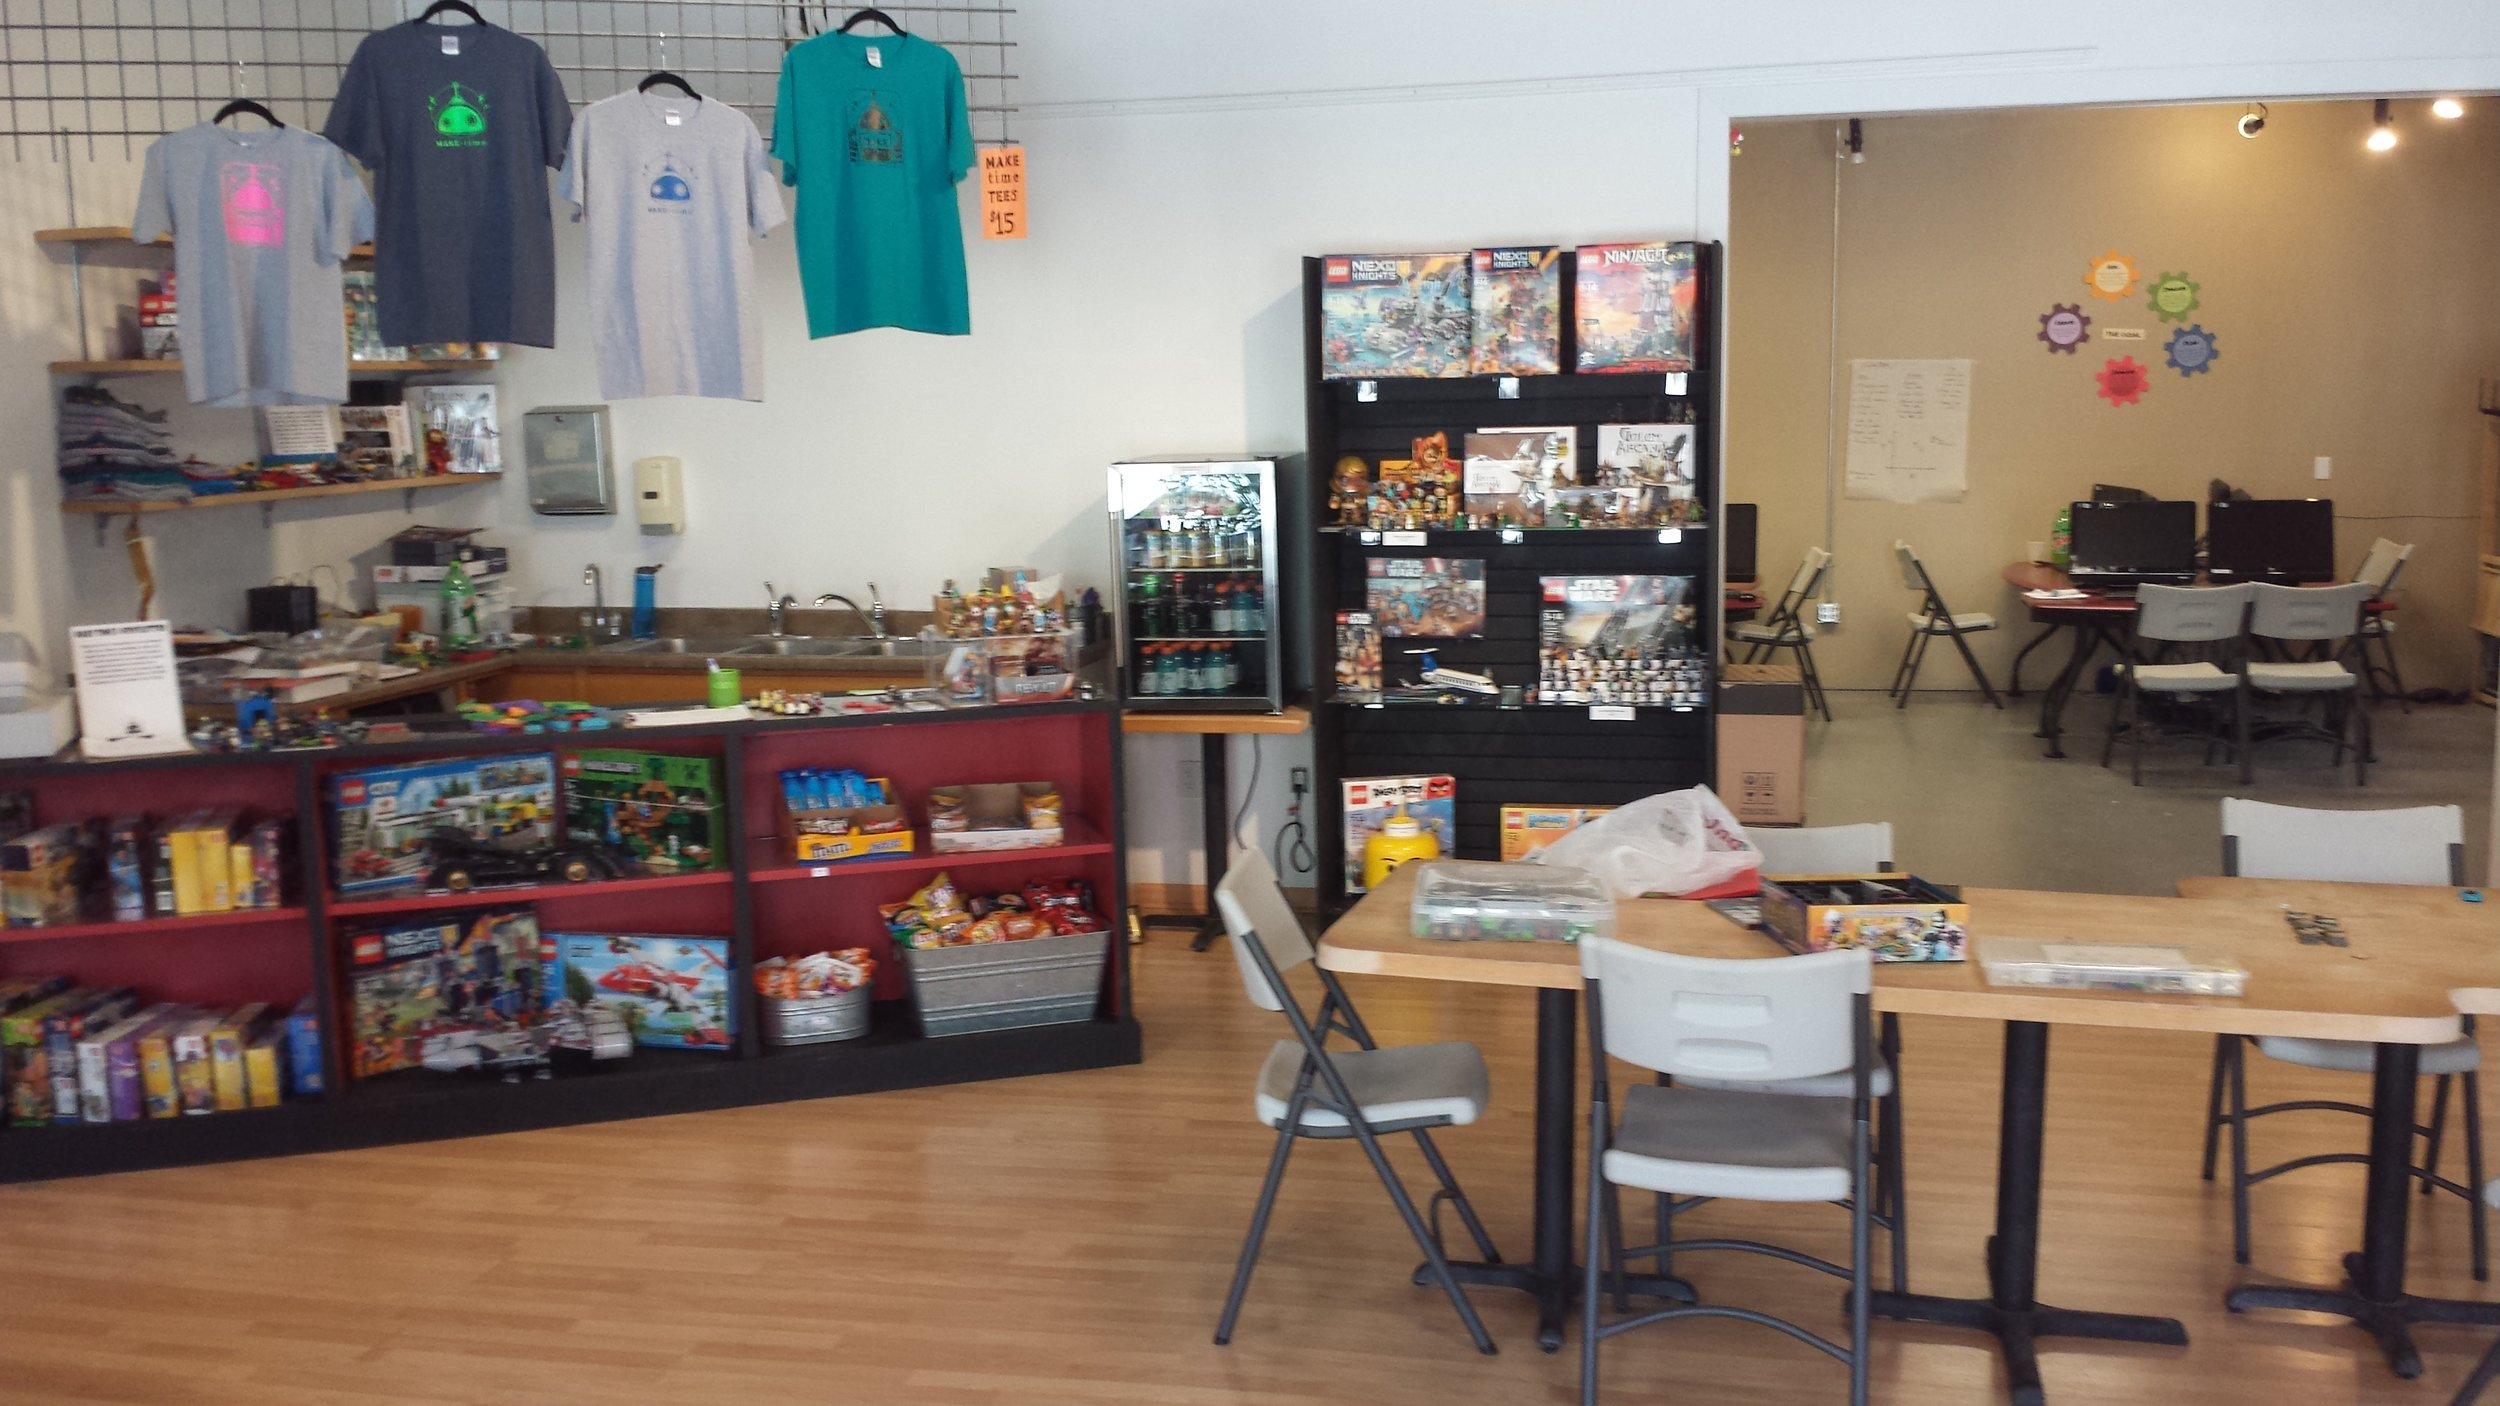 Make Time : 1400 Square Feet of Tools/Supplies for Making Art & Anything You Dream Up